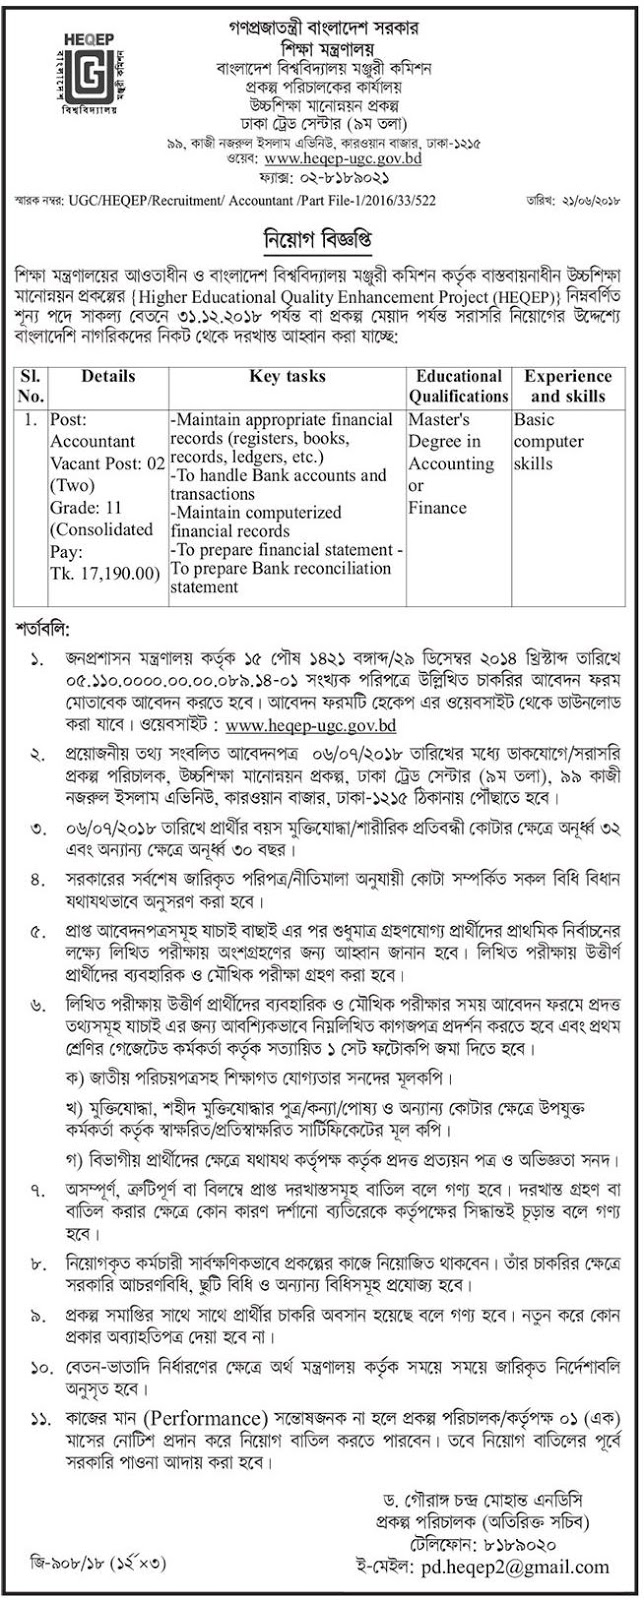 Higher Education Quality Enhancement Project (HEQEP) Job Circular 2018